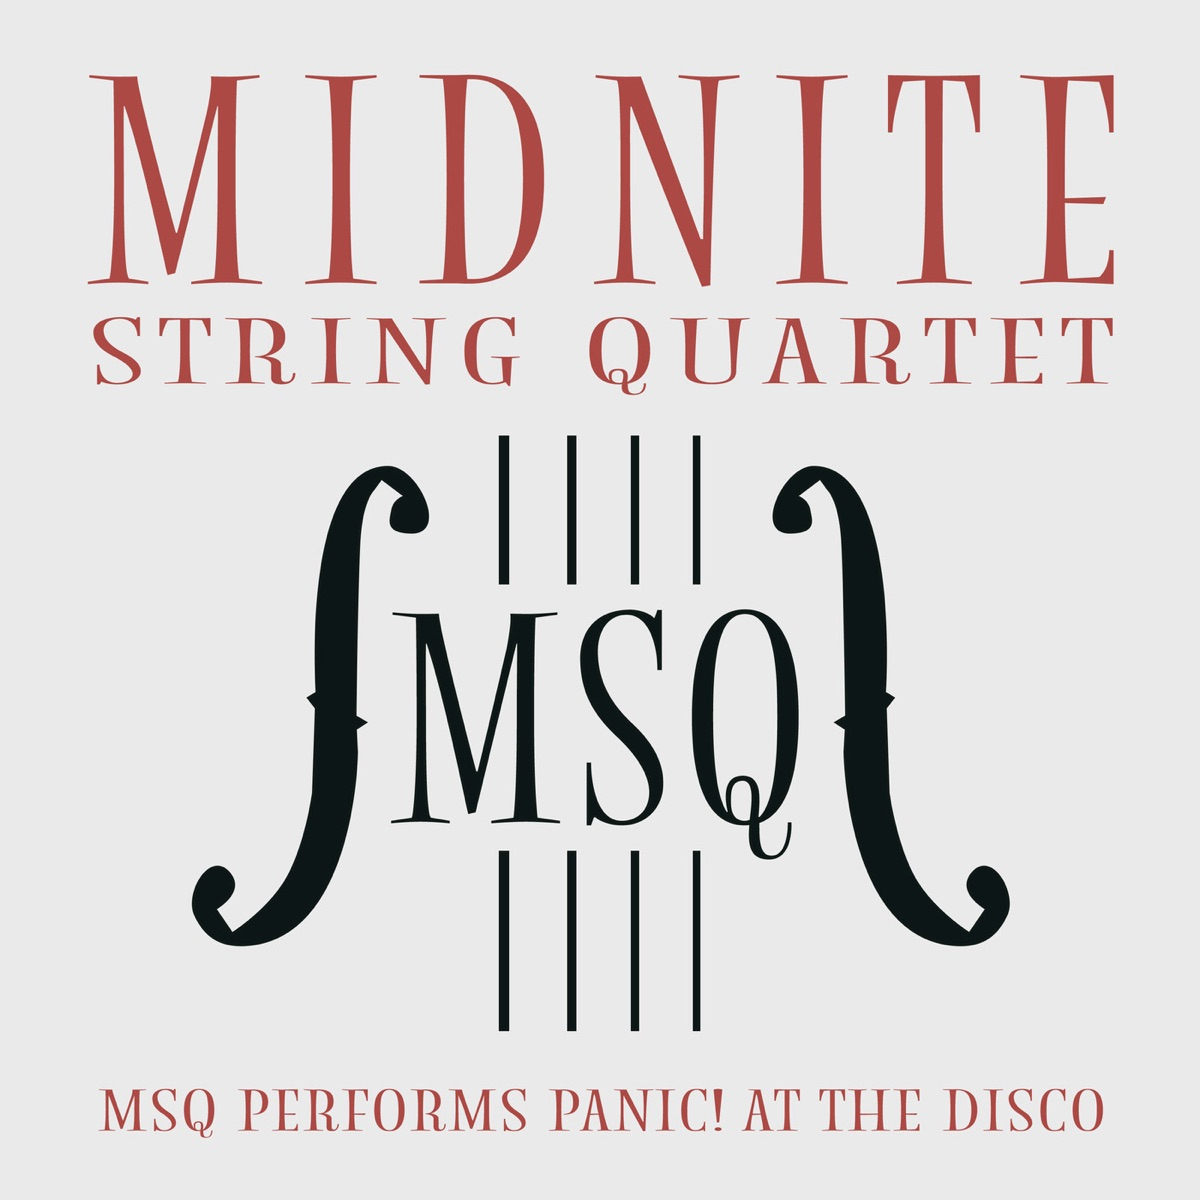 MSQ Performs Panic At the Disco Midnite String Quartet CD cover